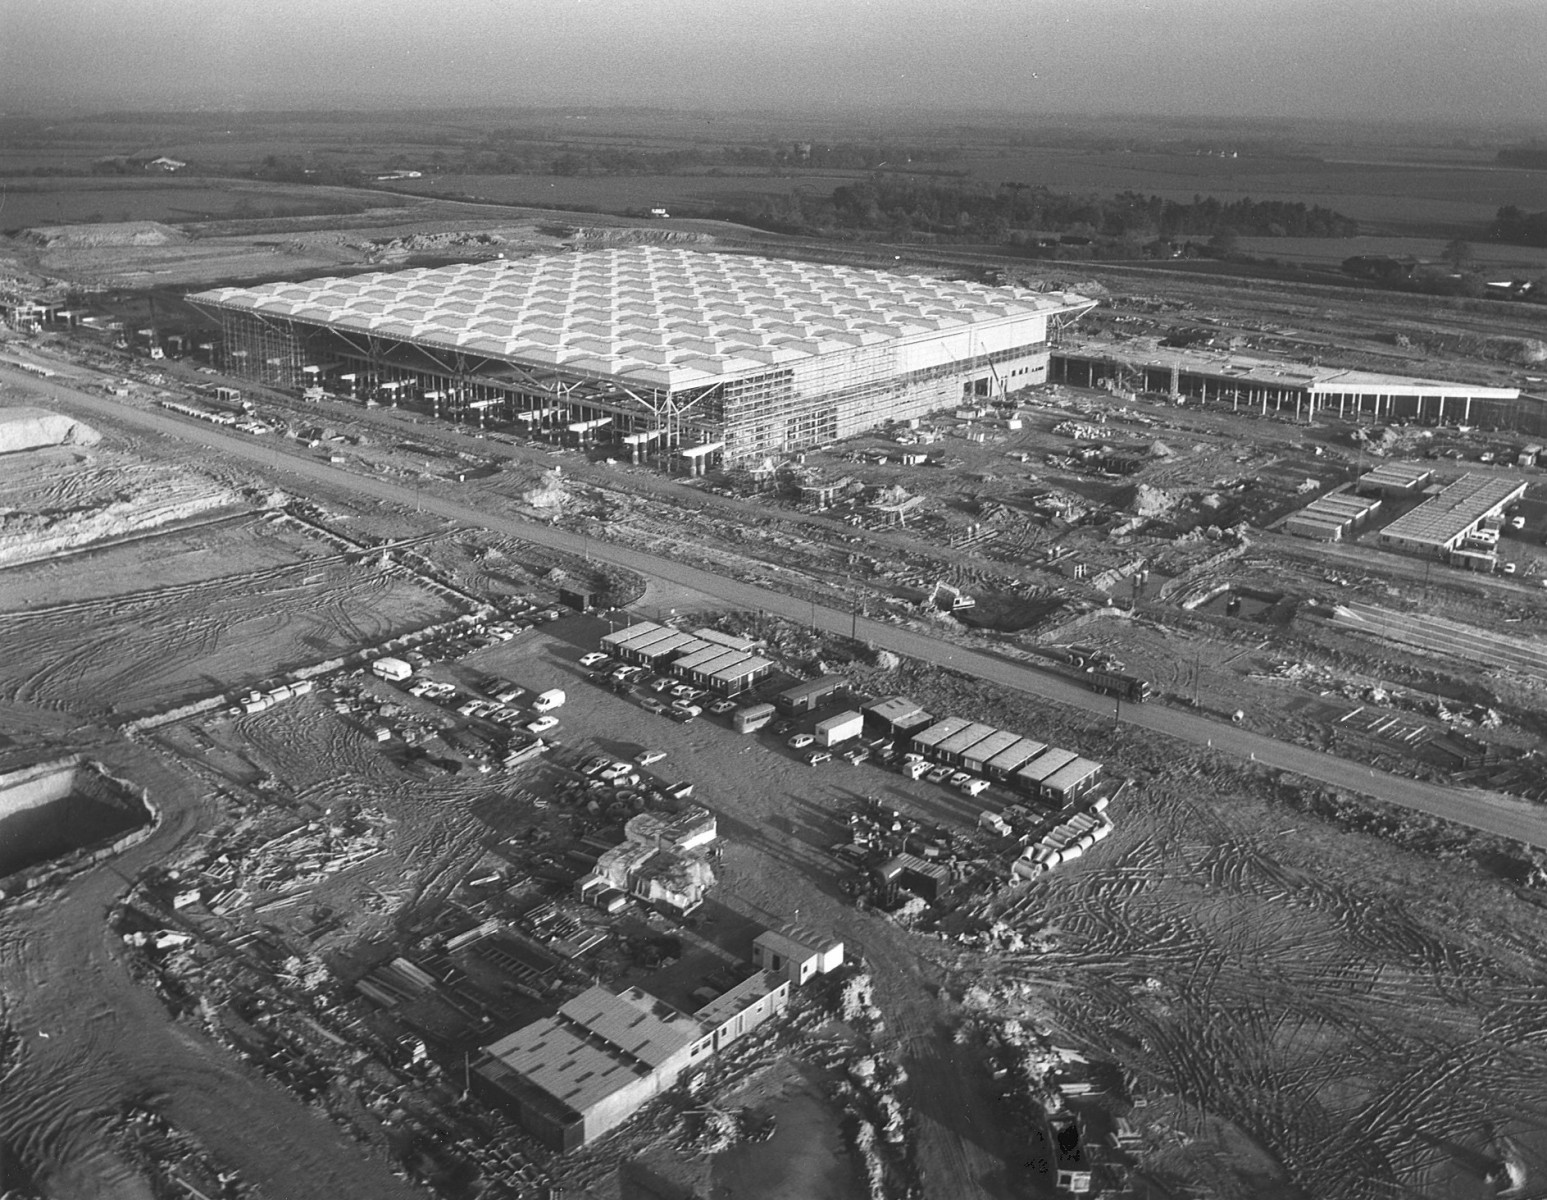 Stansted's new terminal buliding taking shape 1989.